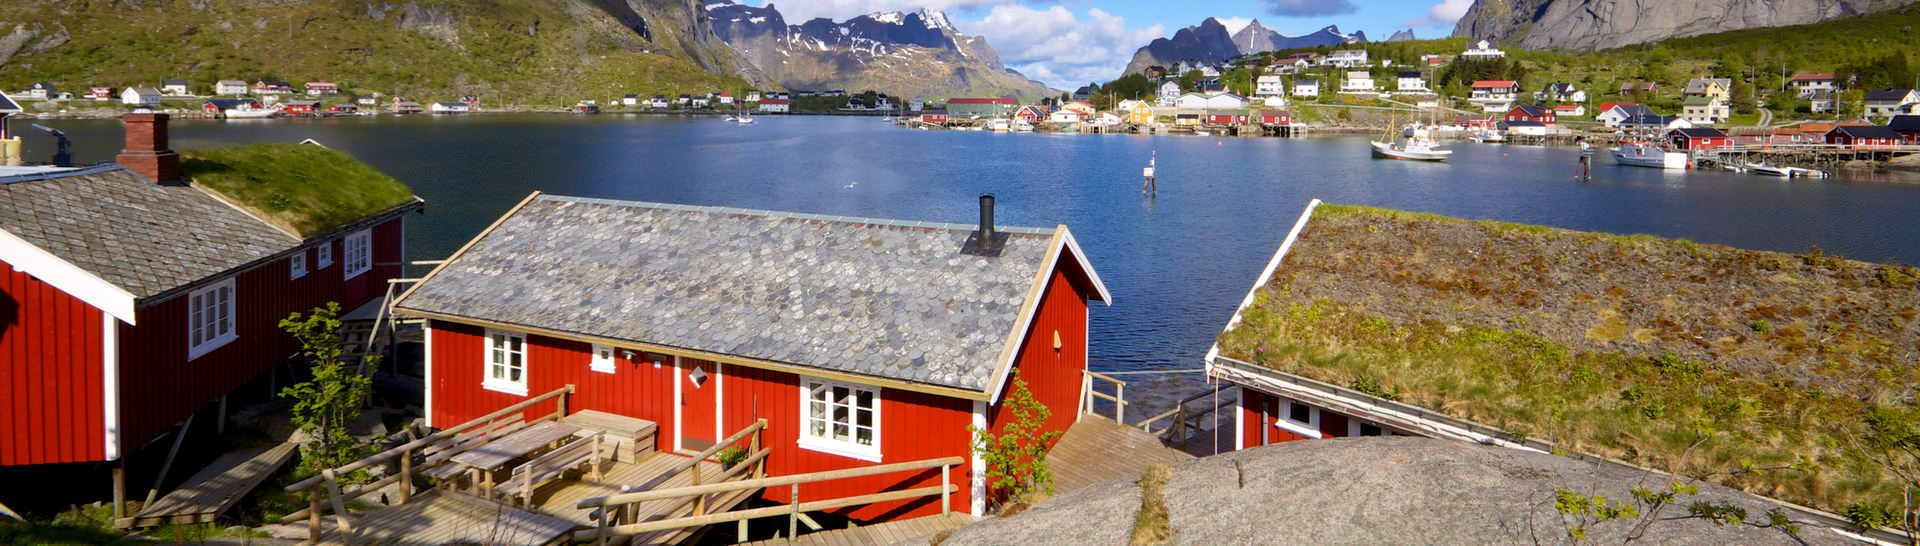 Visit traditional fishing villages of Norway to slow down and soak in some of the most picturesque fjord views